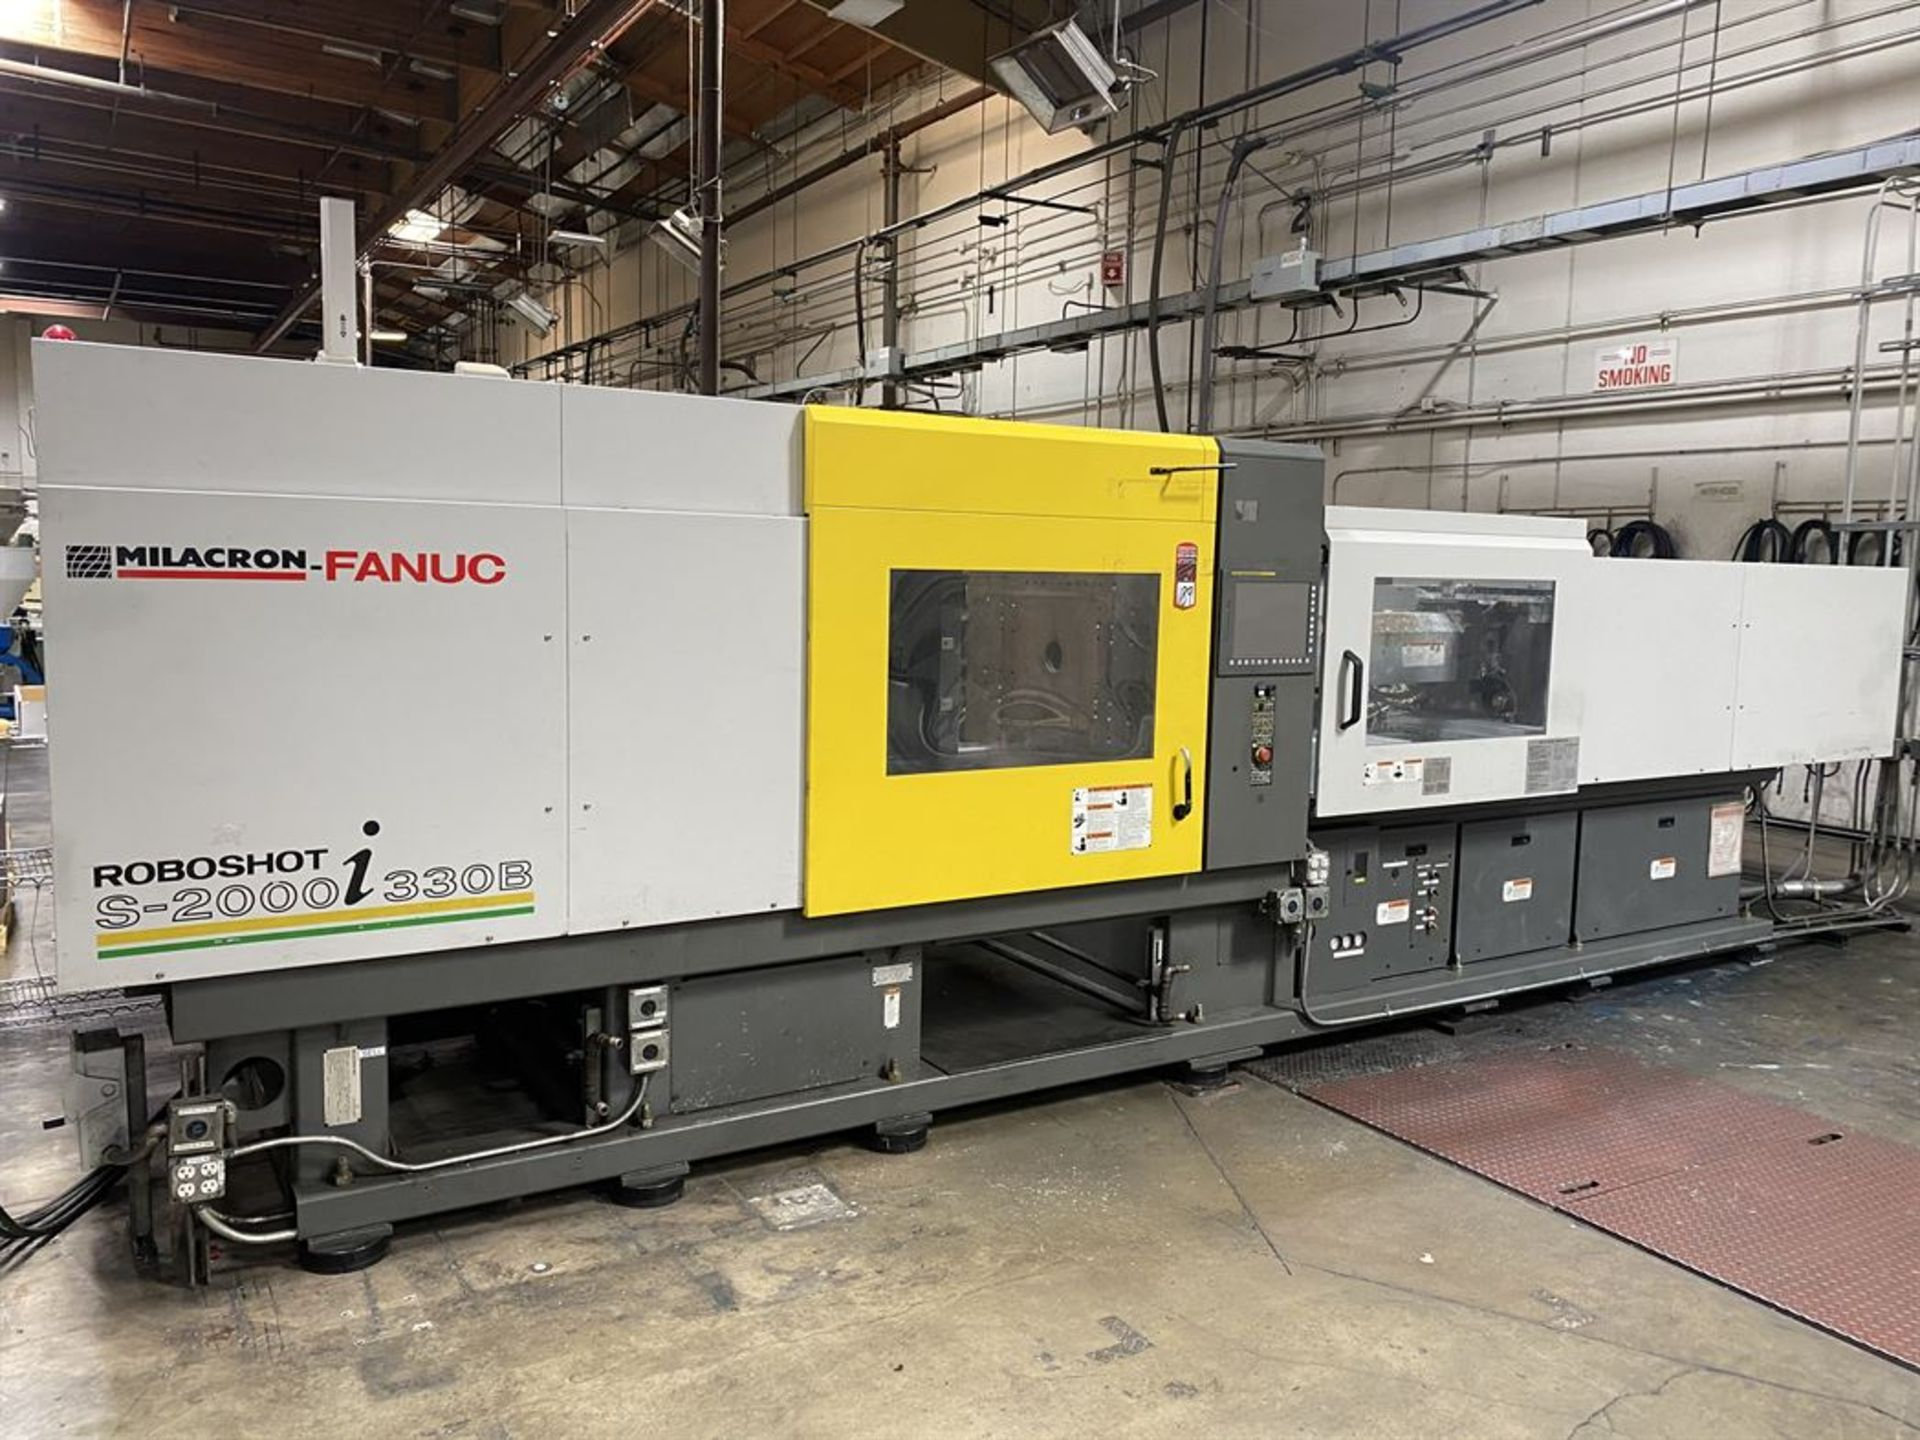 Lot 189 - 2007 CINCINNATI MILACRON FANUC RoboShot S-2000i 330B 330 Ton Electric Injection Molder, s/n